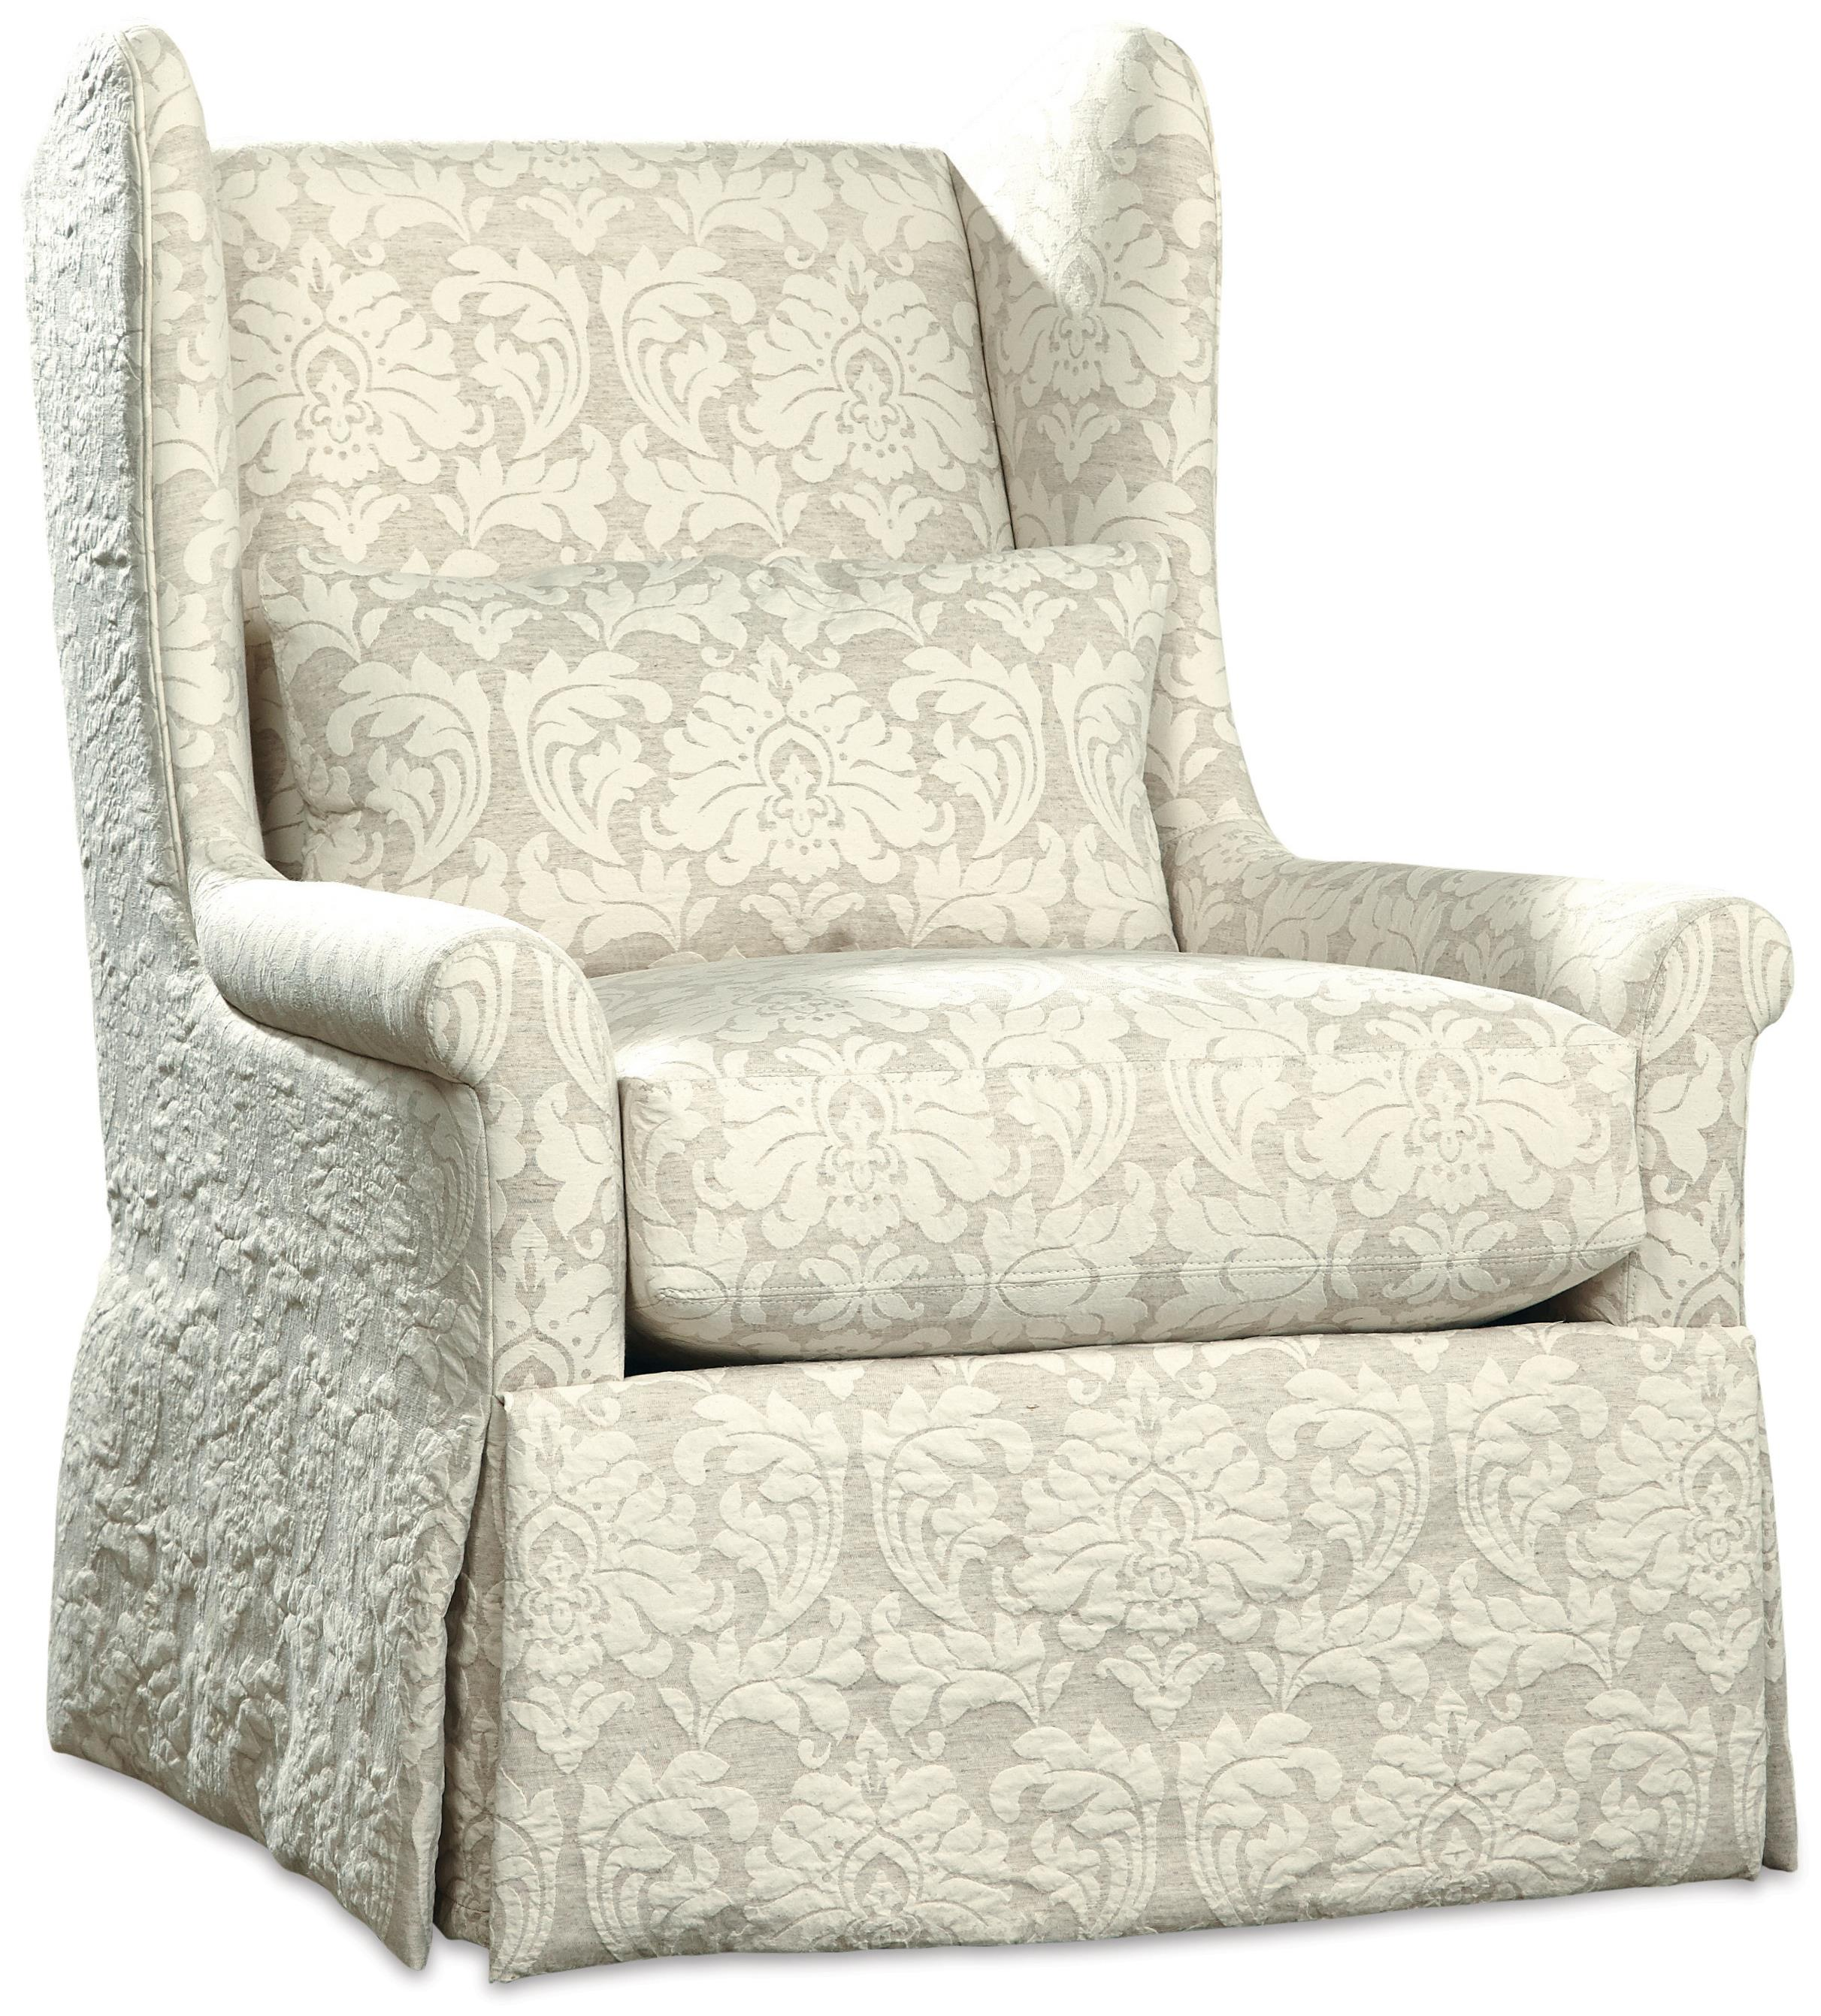 3335 Swivel Glider by Huntington House at Belfort Furniture